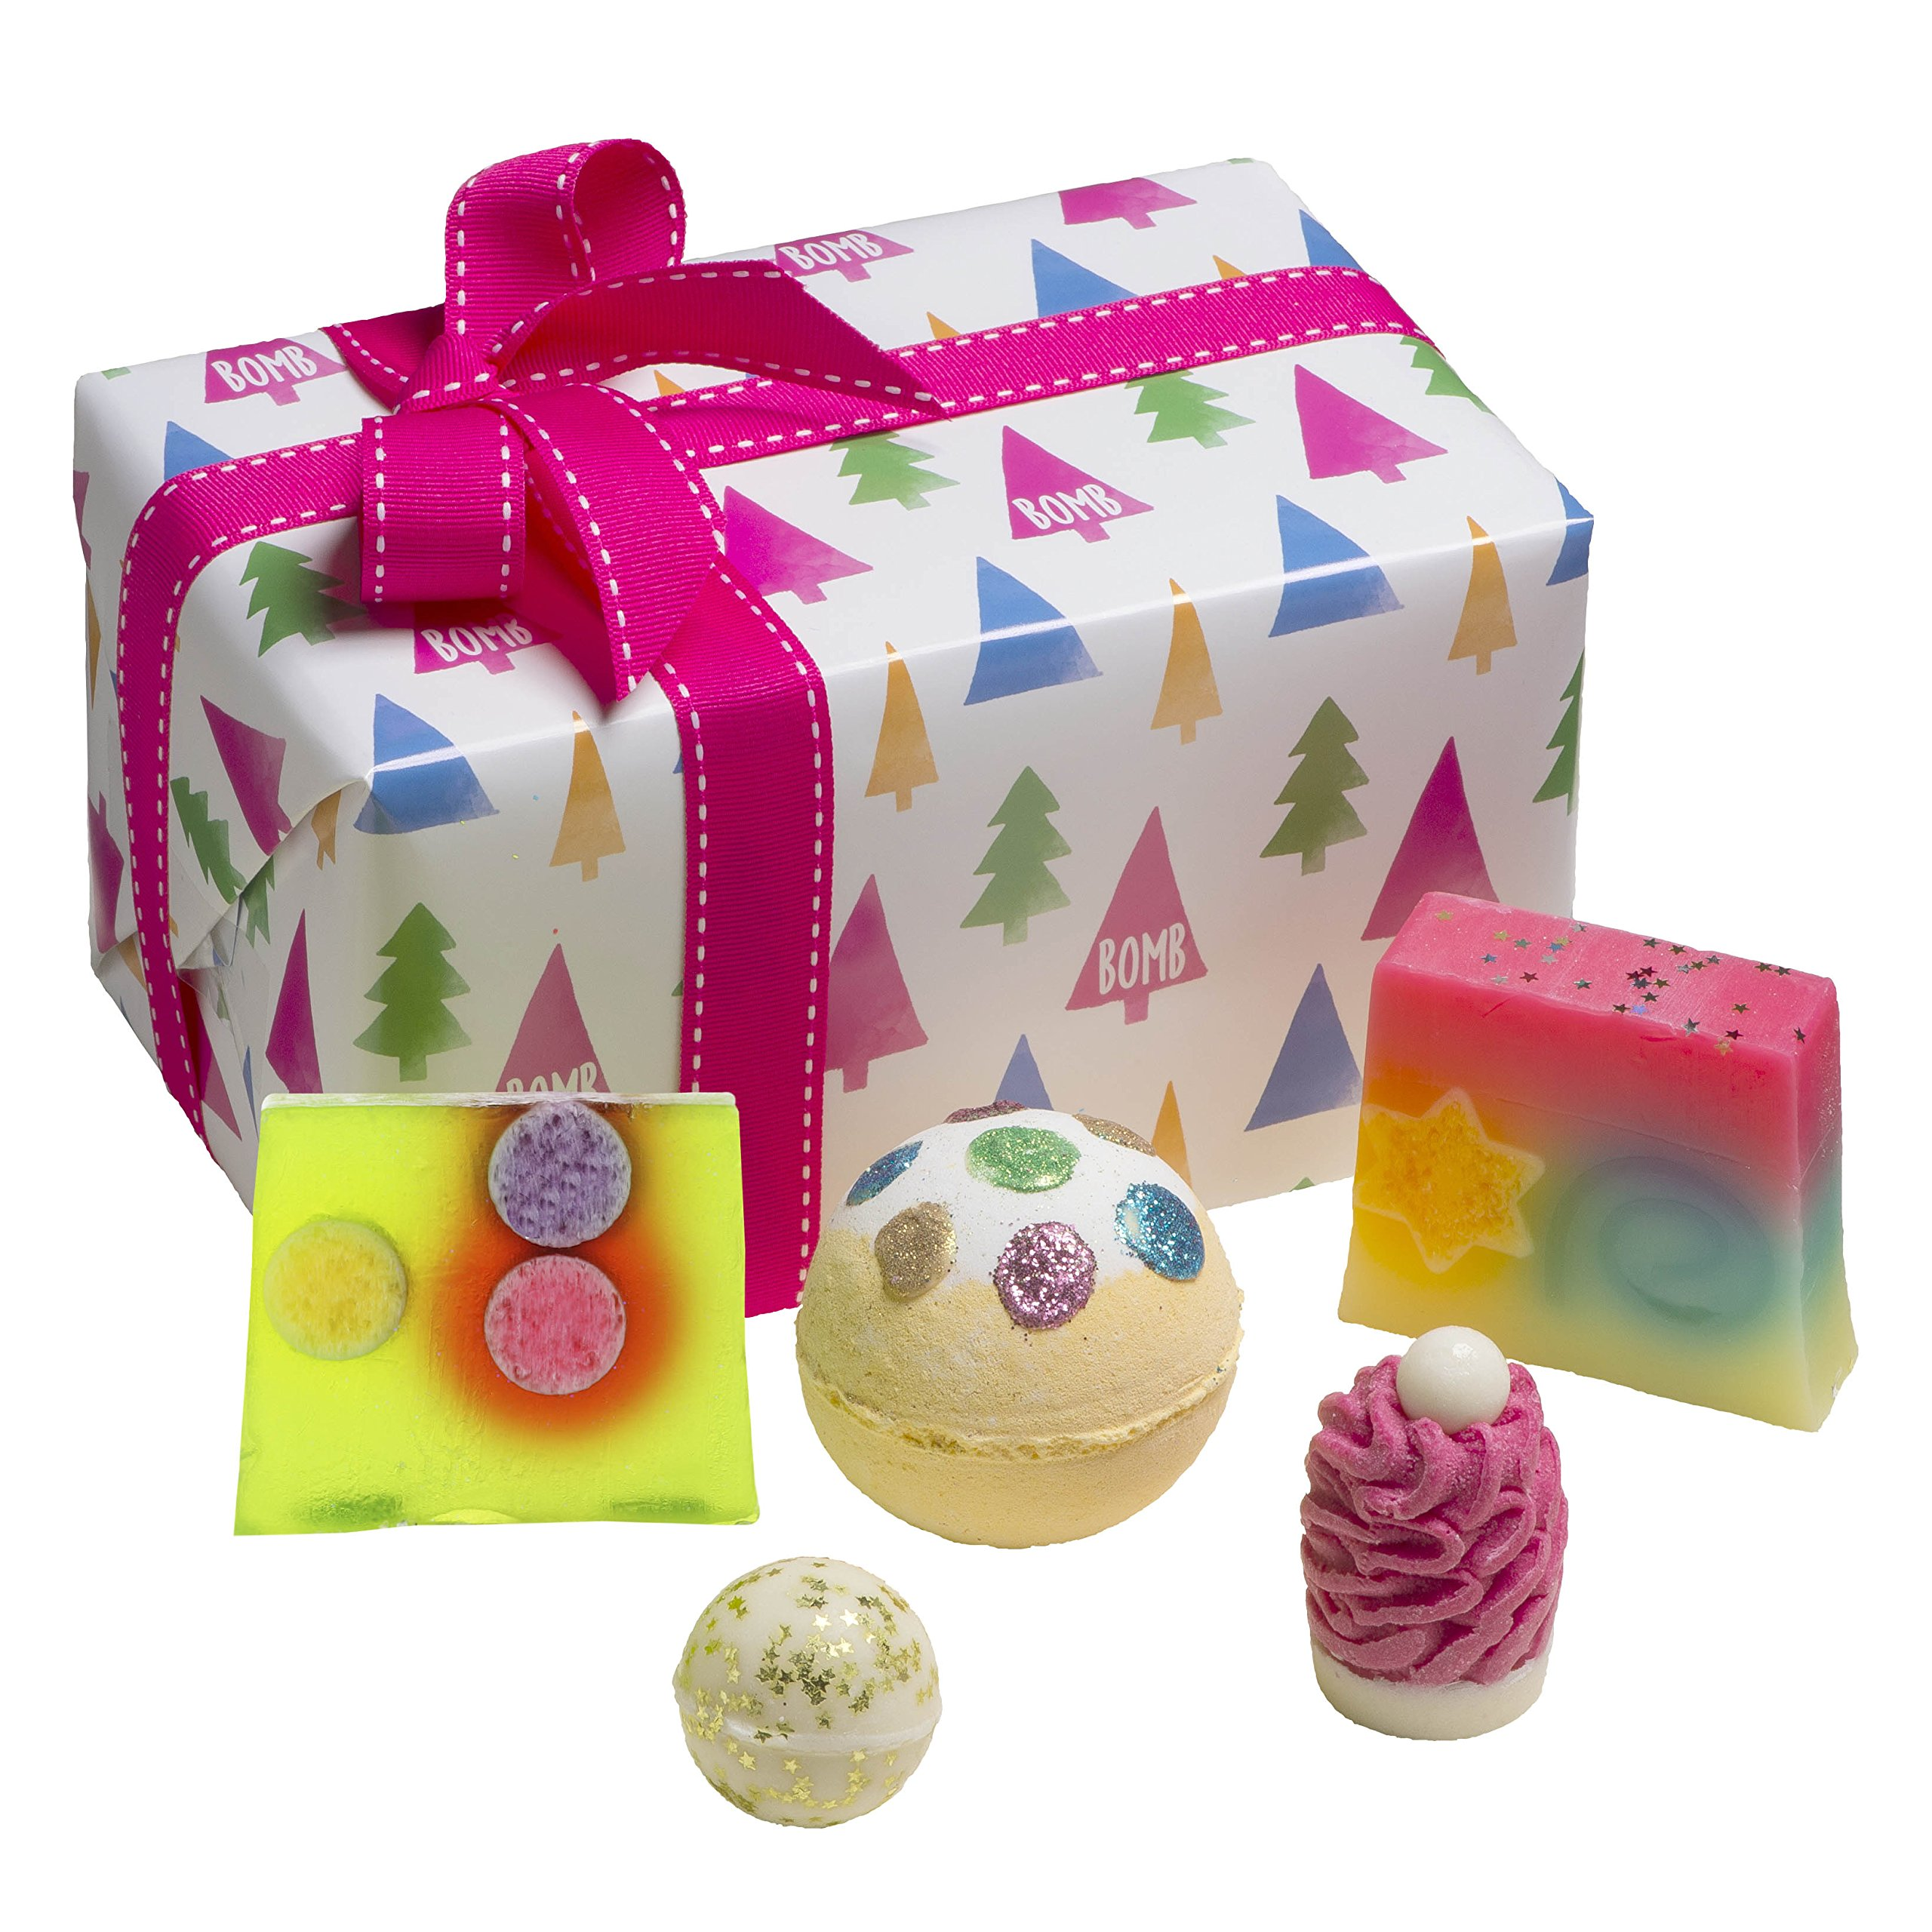 Bomb Cosmetics O Christmas Tree Handmade Wrapped Gift Pack [Contains 5-Pieces], 440g